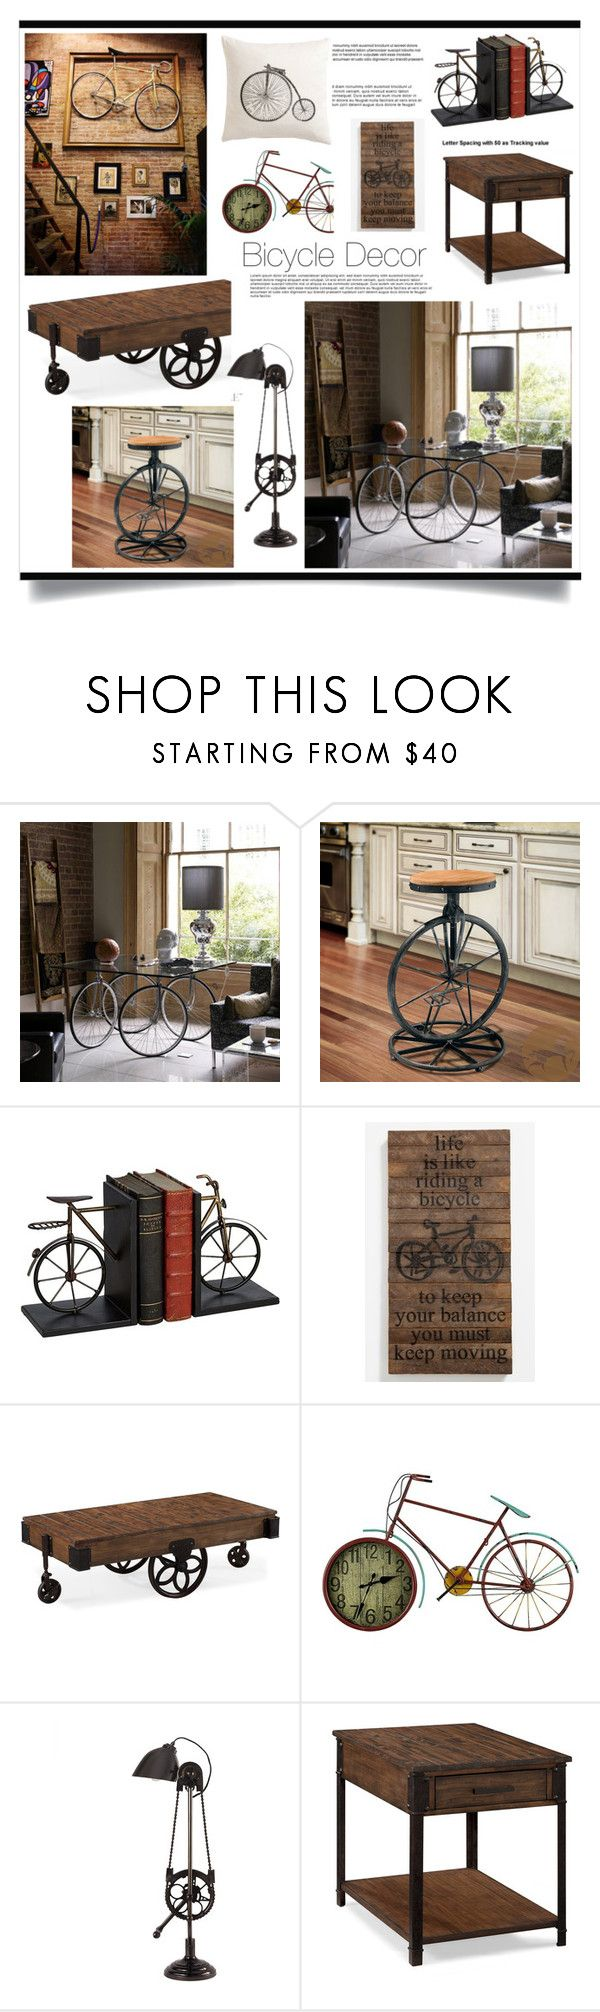 """""""Bicycle Decor"""" by jecikilicica ❤ liked on Polyvore featuring interior, interiors, interior design, home, home decor, interior decorating, WALL, Christopher Knight Home, Second Nature By Hand and Magnussen Home"""